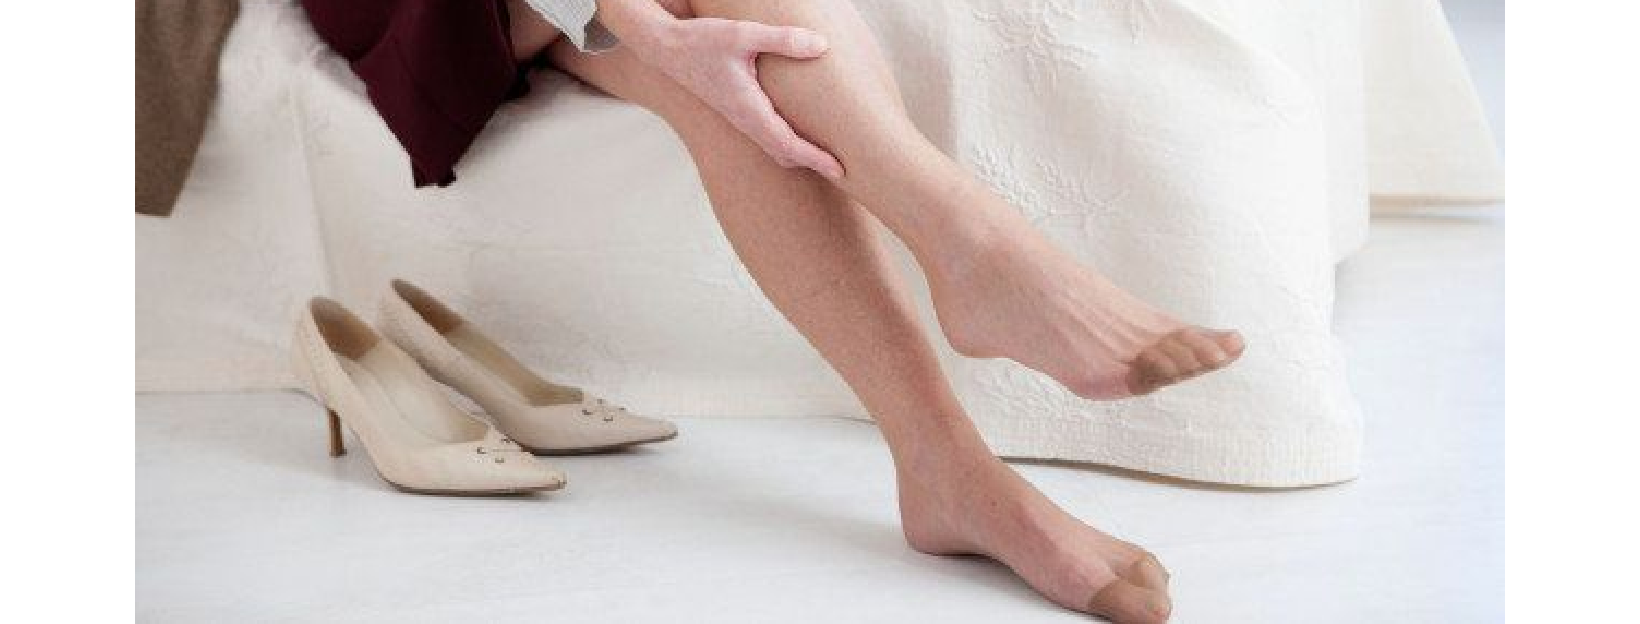 Top 3 Tips for Treating Plantar Fasciitis